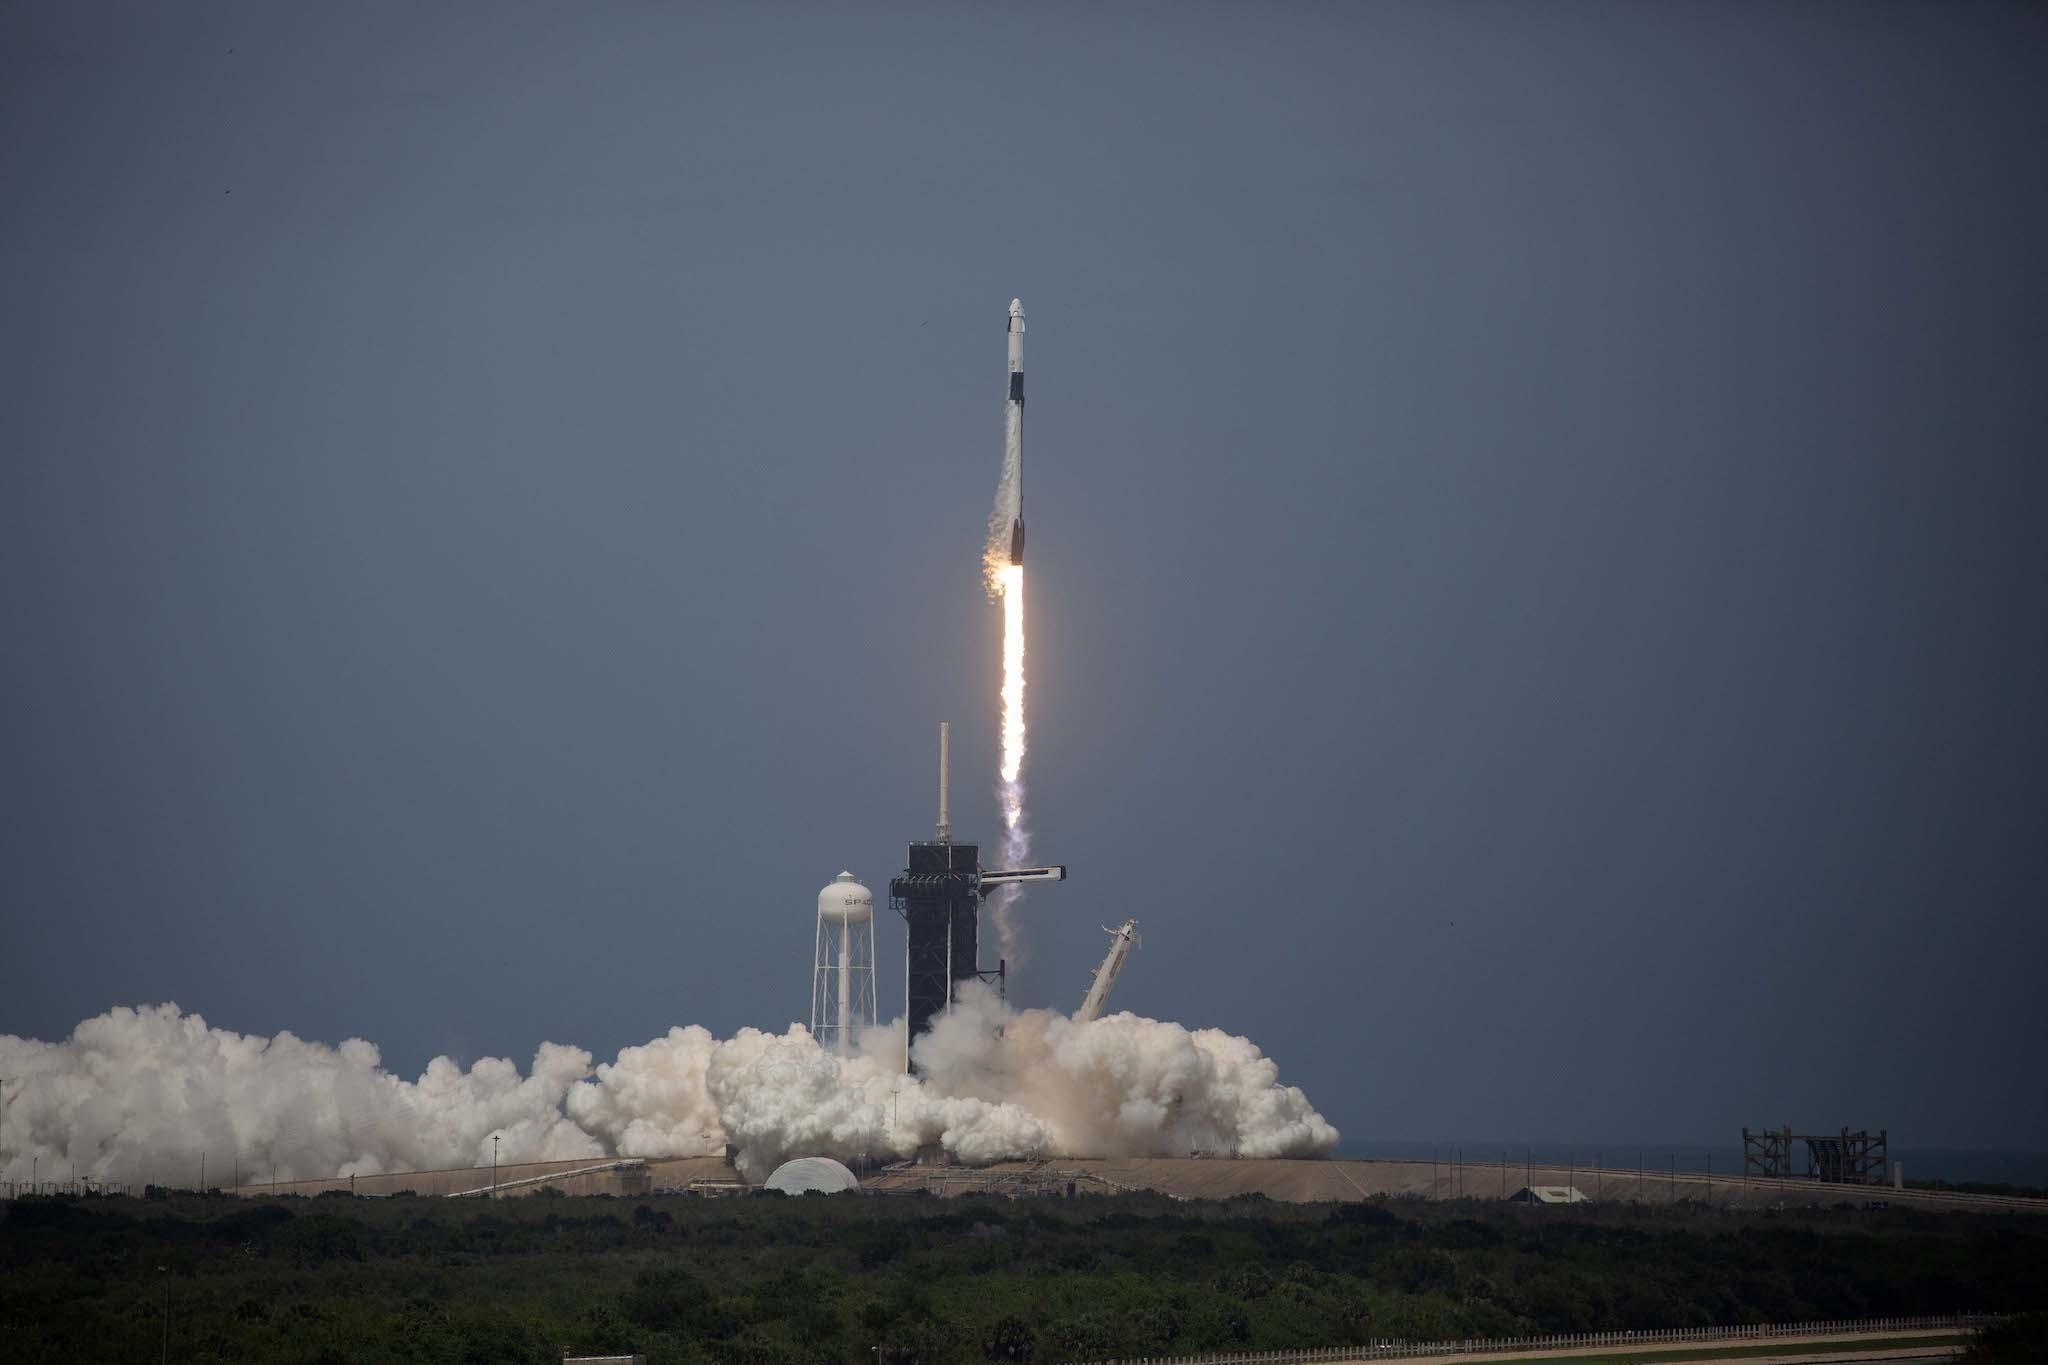 SpaceX Nasa launch: Watch video of astronauts being sent into space on historic mission